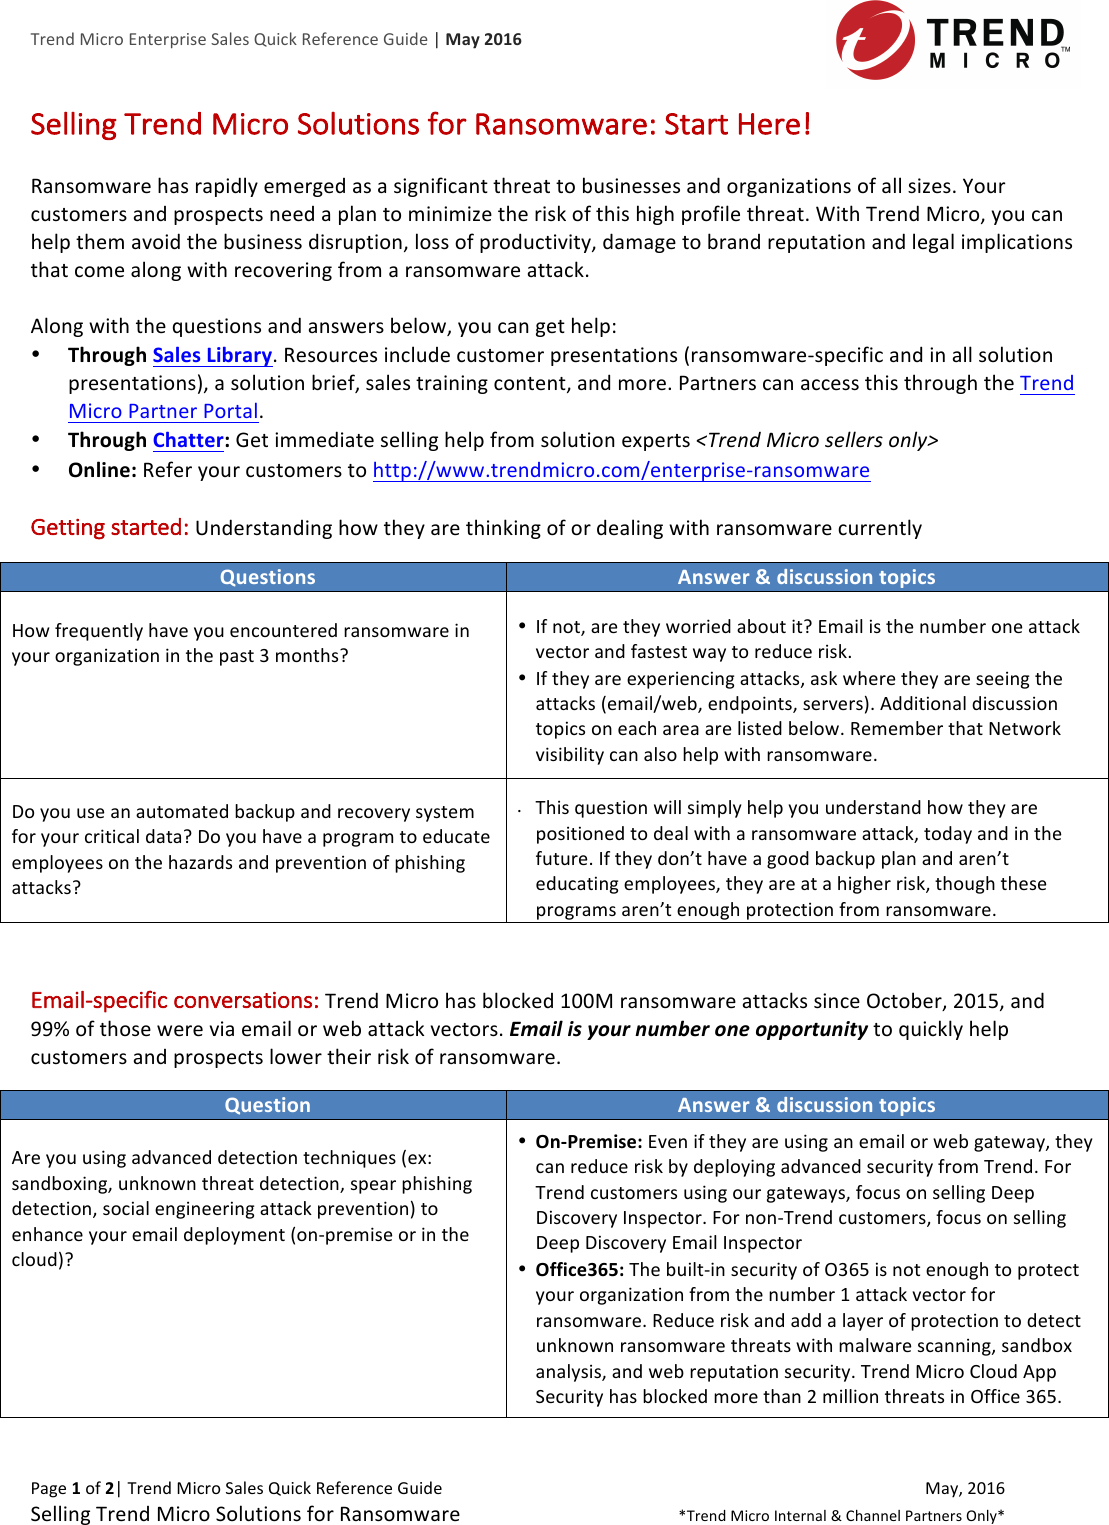 Ransomware Enterprise Sales Quick Reference Guide